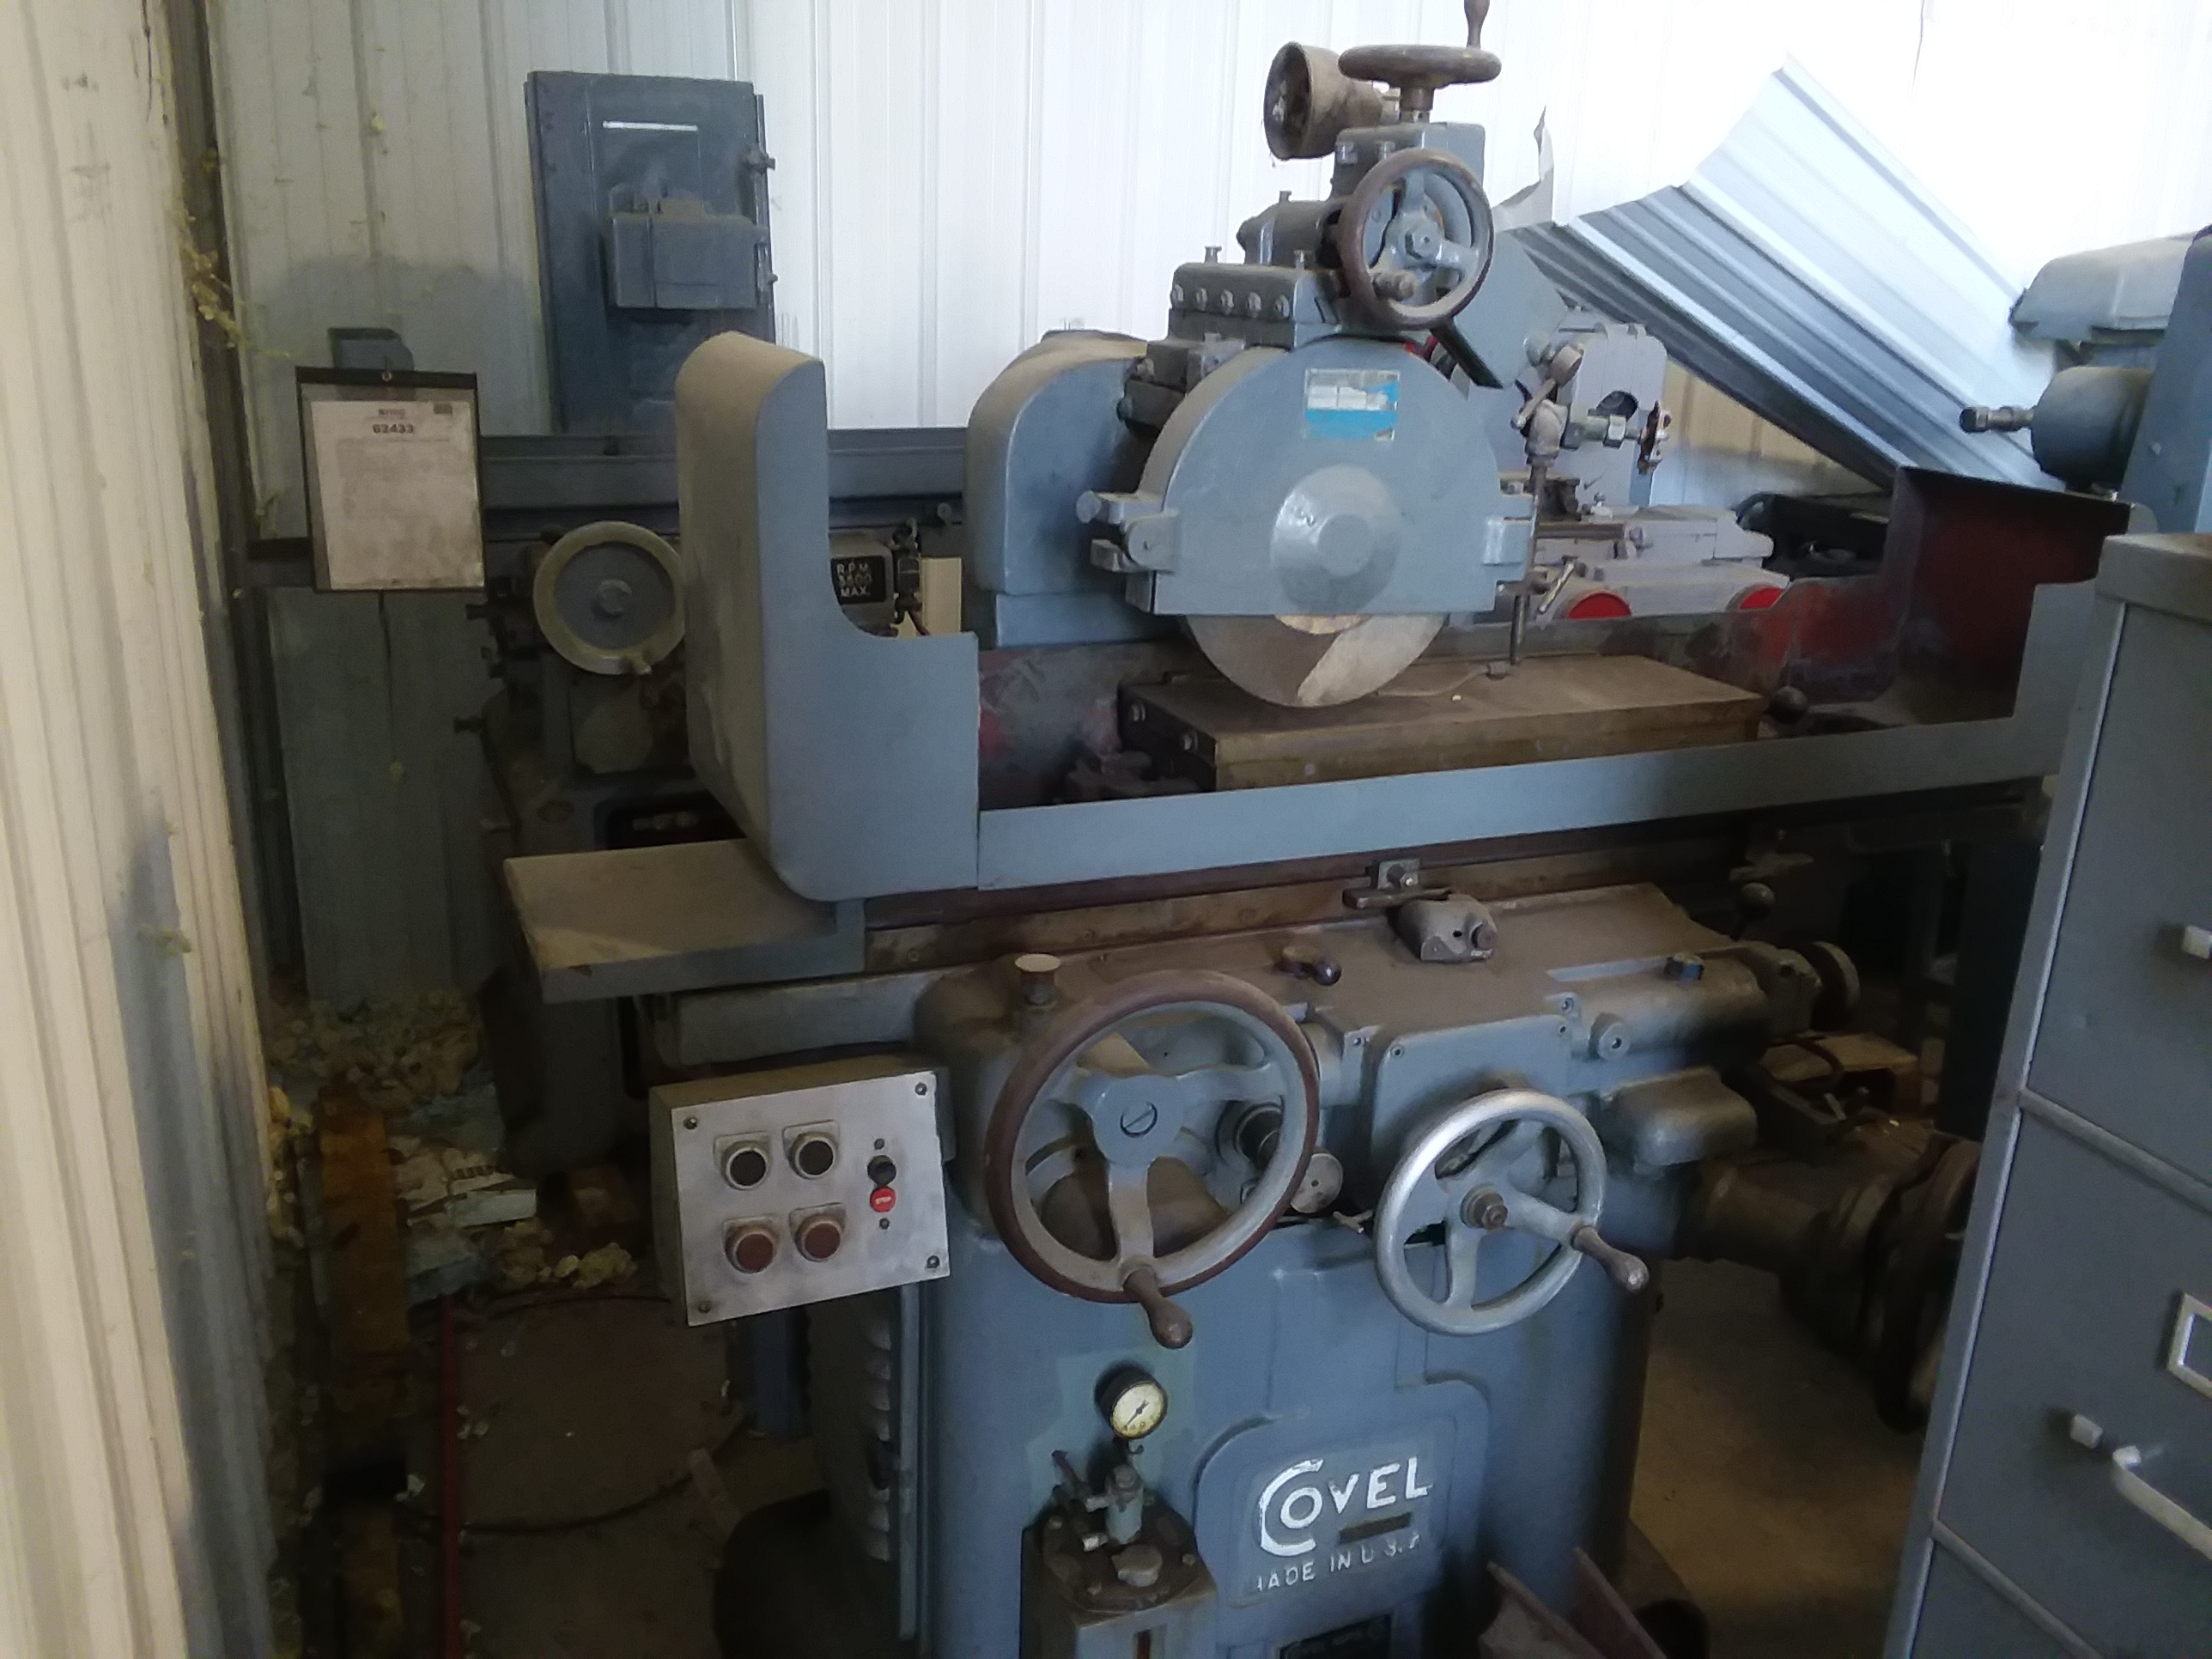 (1) PREOWNED COVEL 8 in  X 24 in  HYDRAULIC SURFACE GRINDER,<br>MODEL #: 35, S/N: 35-281, YEAR: 1953